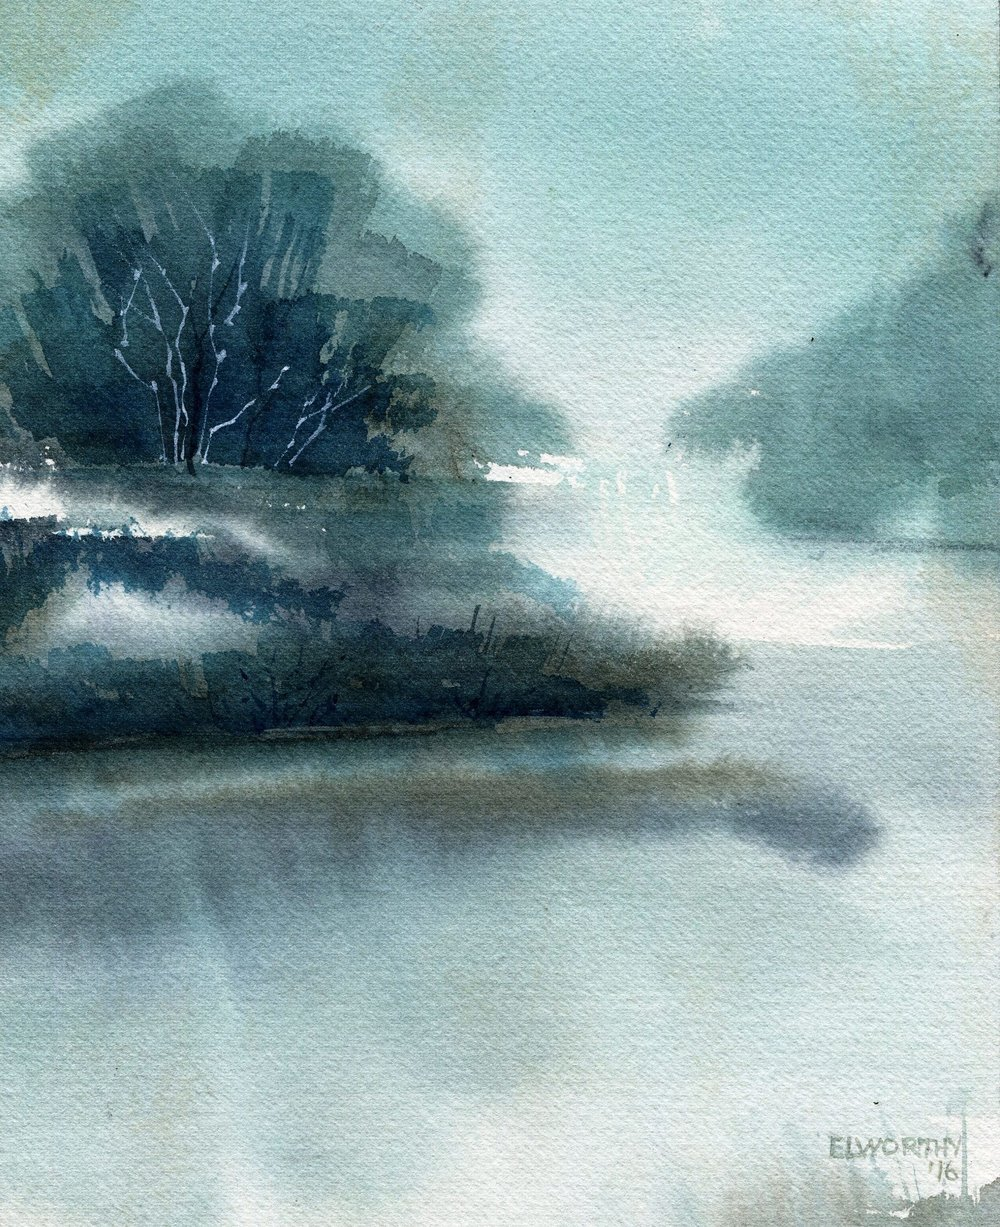 32b Jean Elworthy, Riverbend, Watercolour on paper